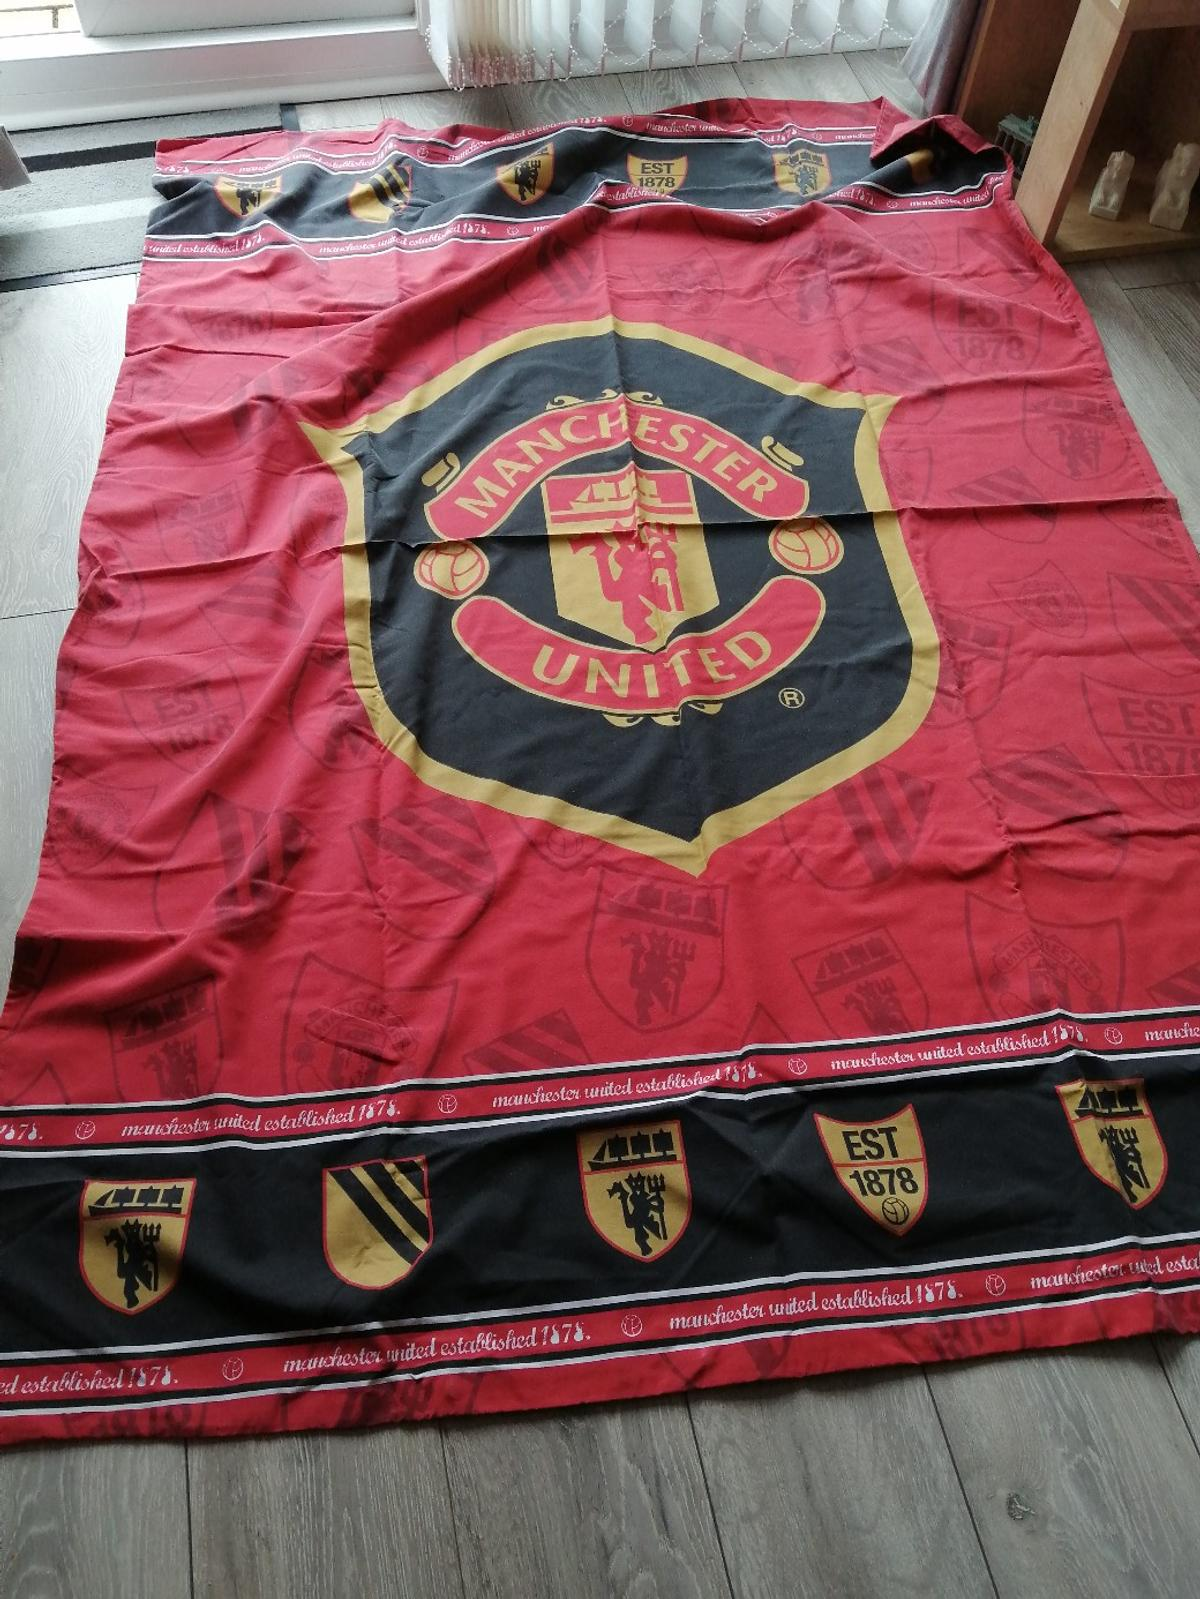 Manchester United Duvet Cover With Pillowcase In Ws6 Staffordshire For 10 00 For Sale Shpock